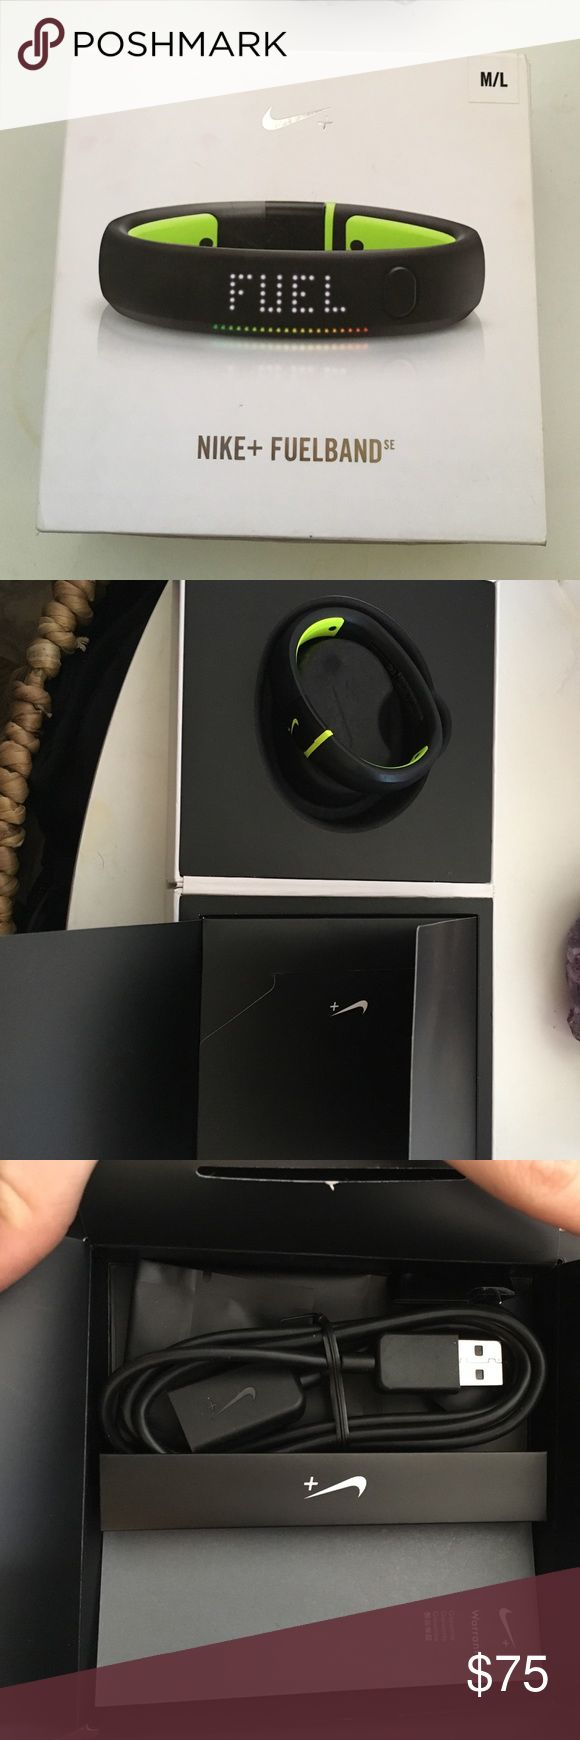 Nike fuel band M/L Brand new Nike fuel band never used. Size m/l retails over $100..open to reasonable offers. To big for my tiny wrists. Nike Accessories Watches